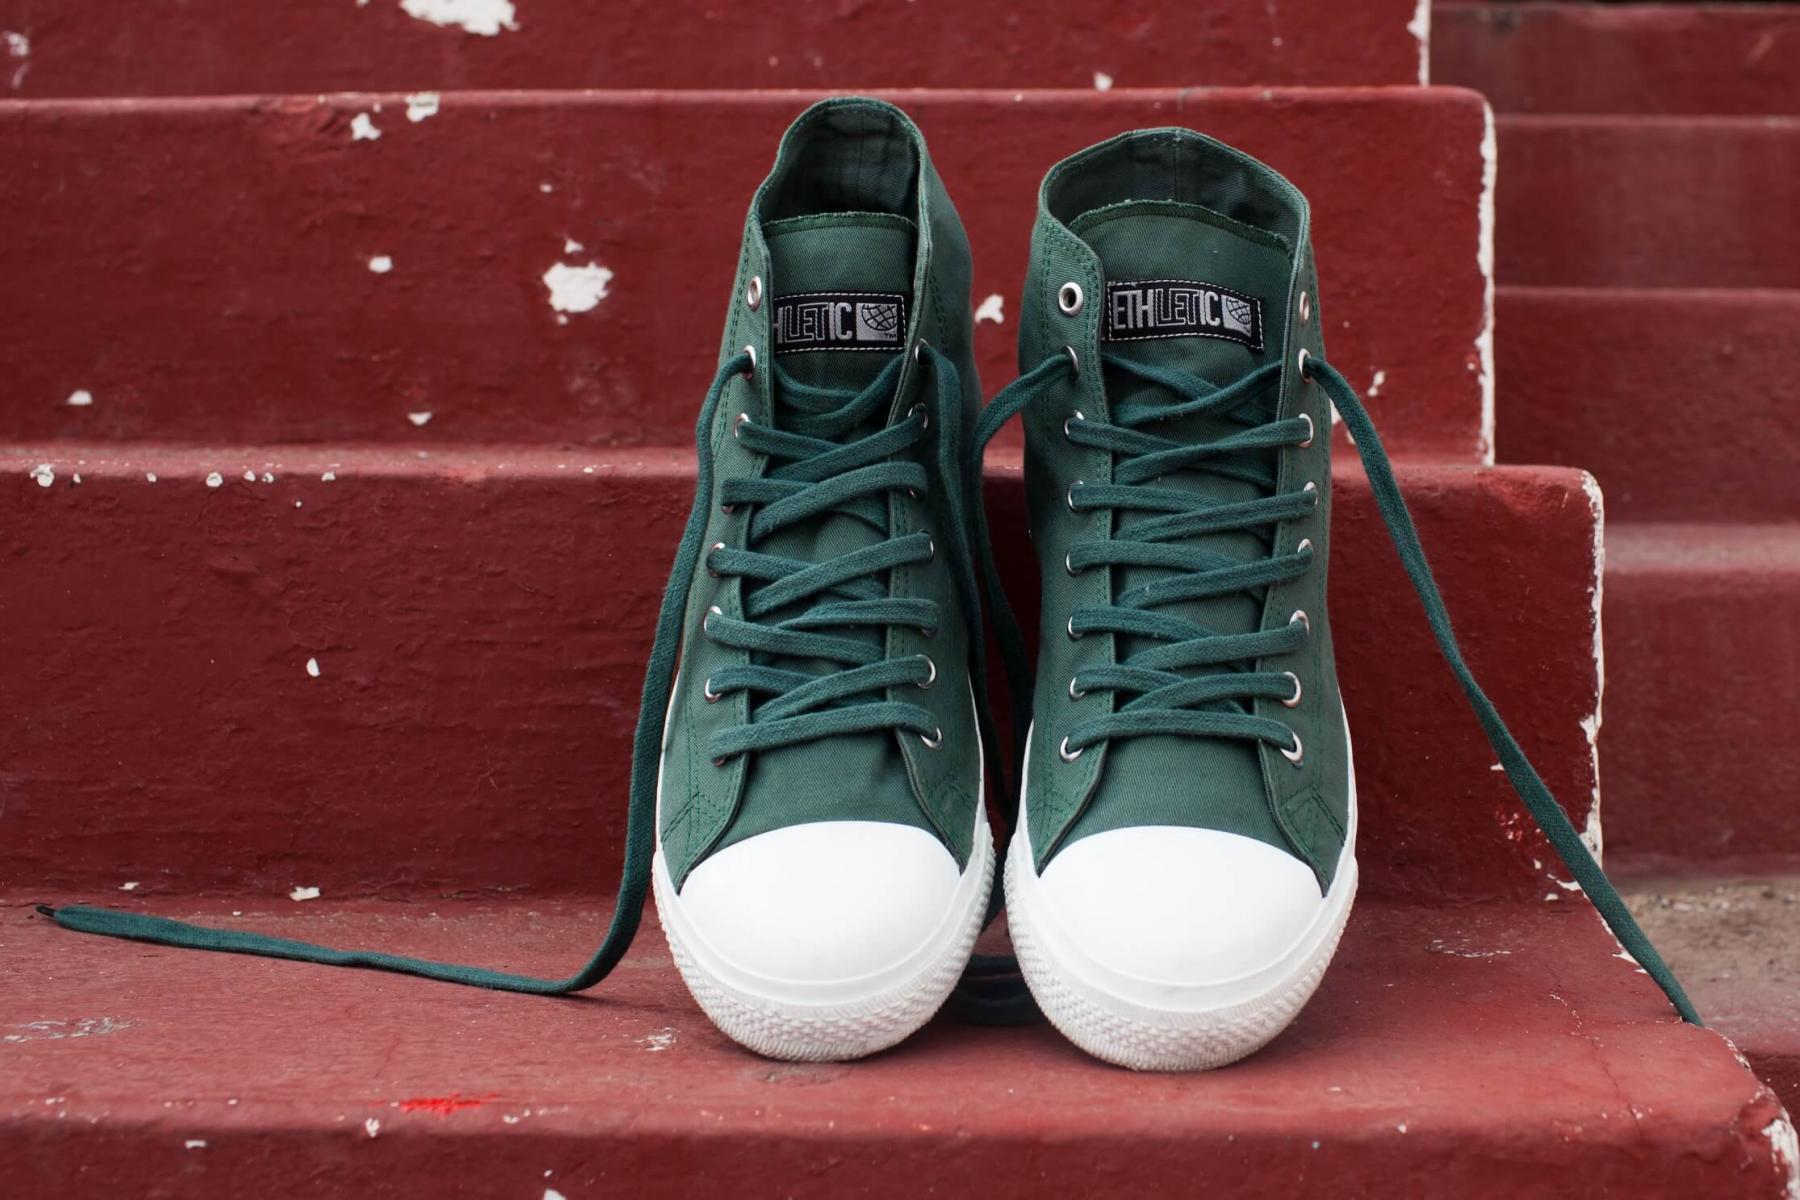 Ethletic fair trade sneakers